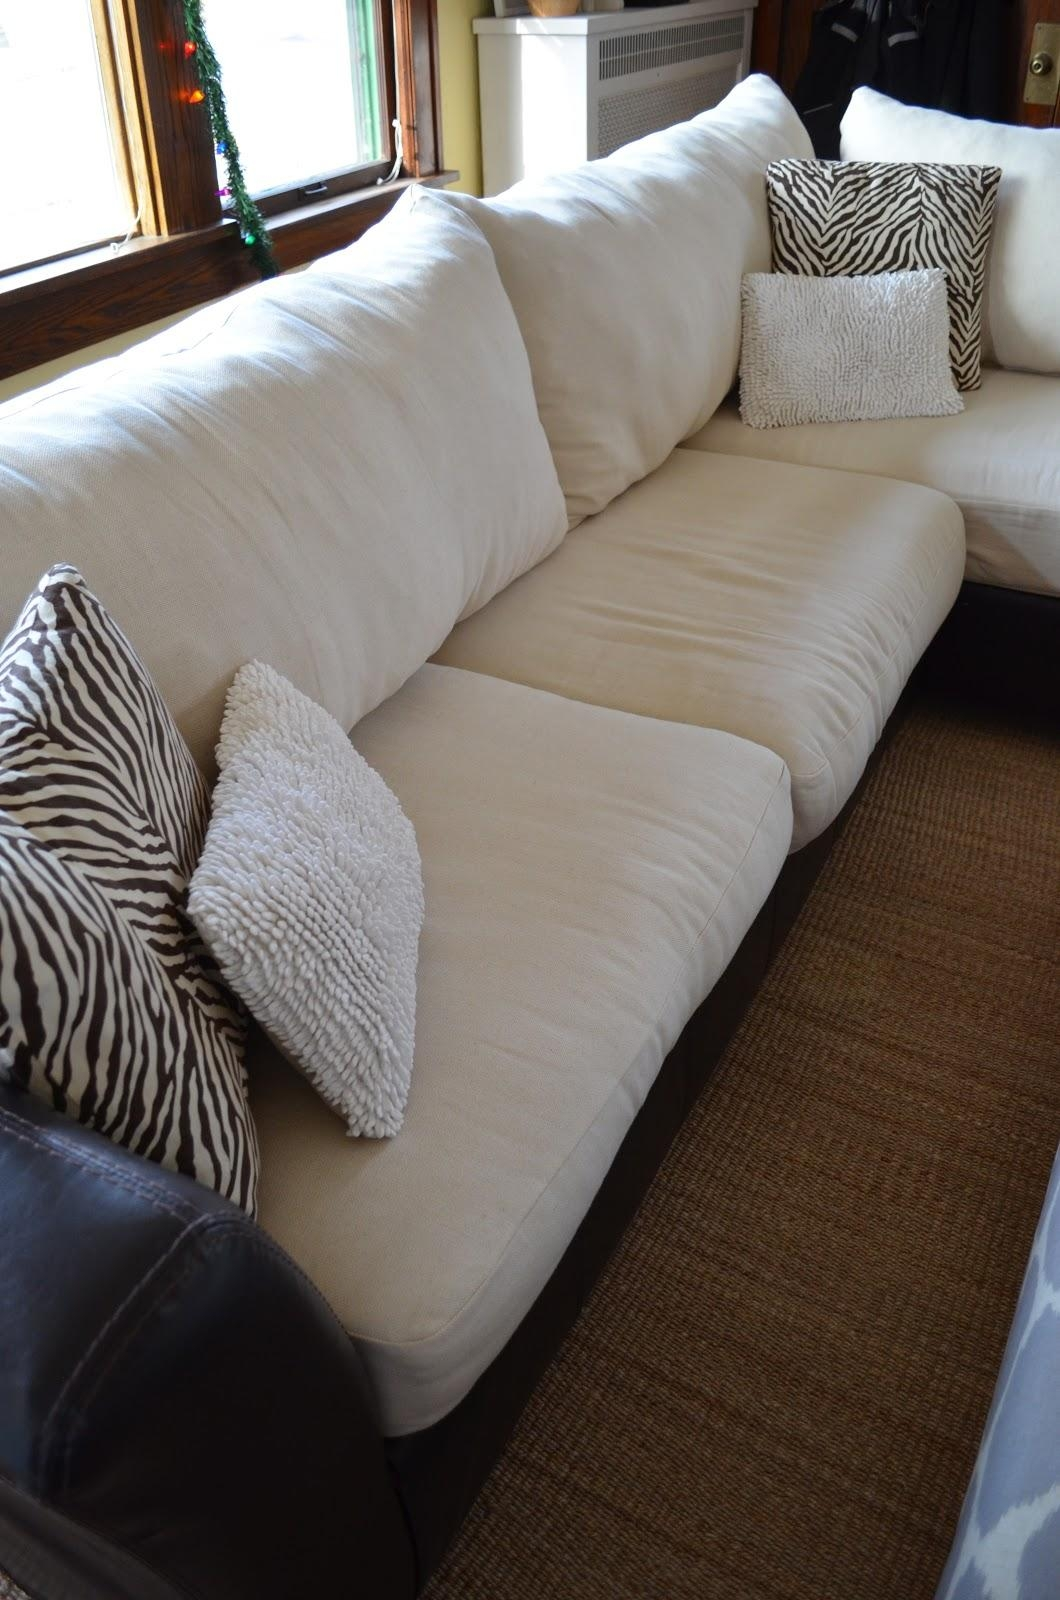 Inside Out Design: How To Make New Back Cushions For A Couch Intended For Sofa Cushions (View 21 of 21)